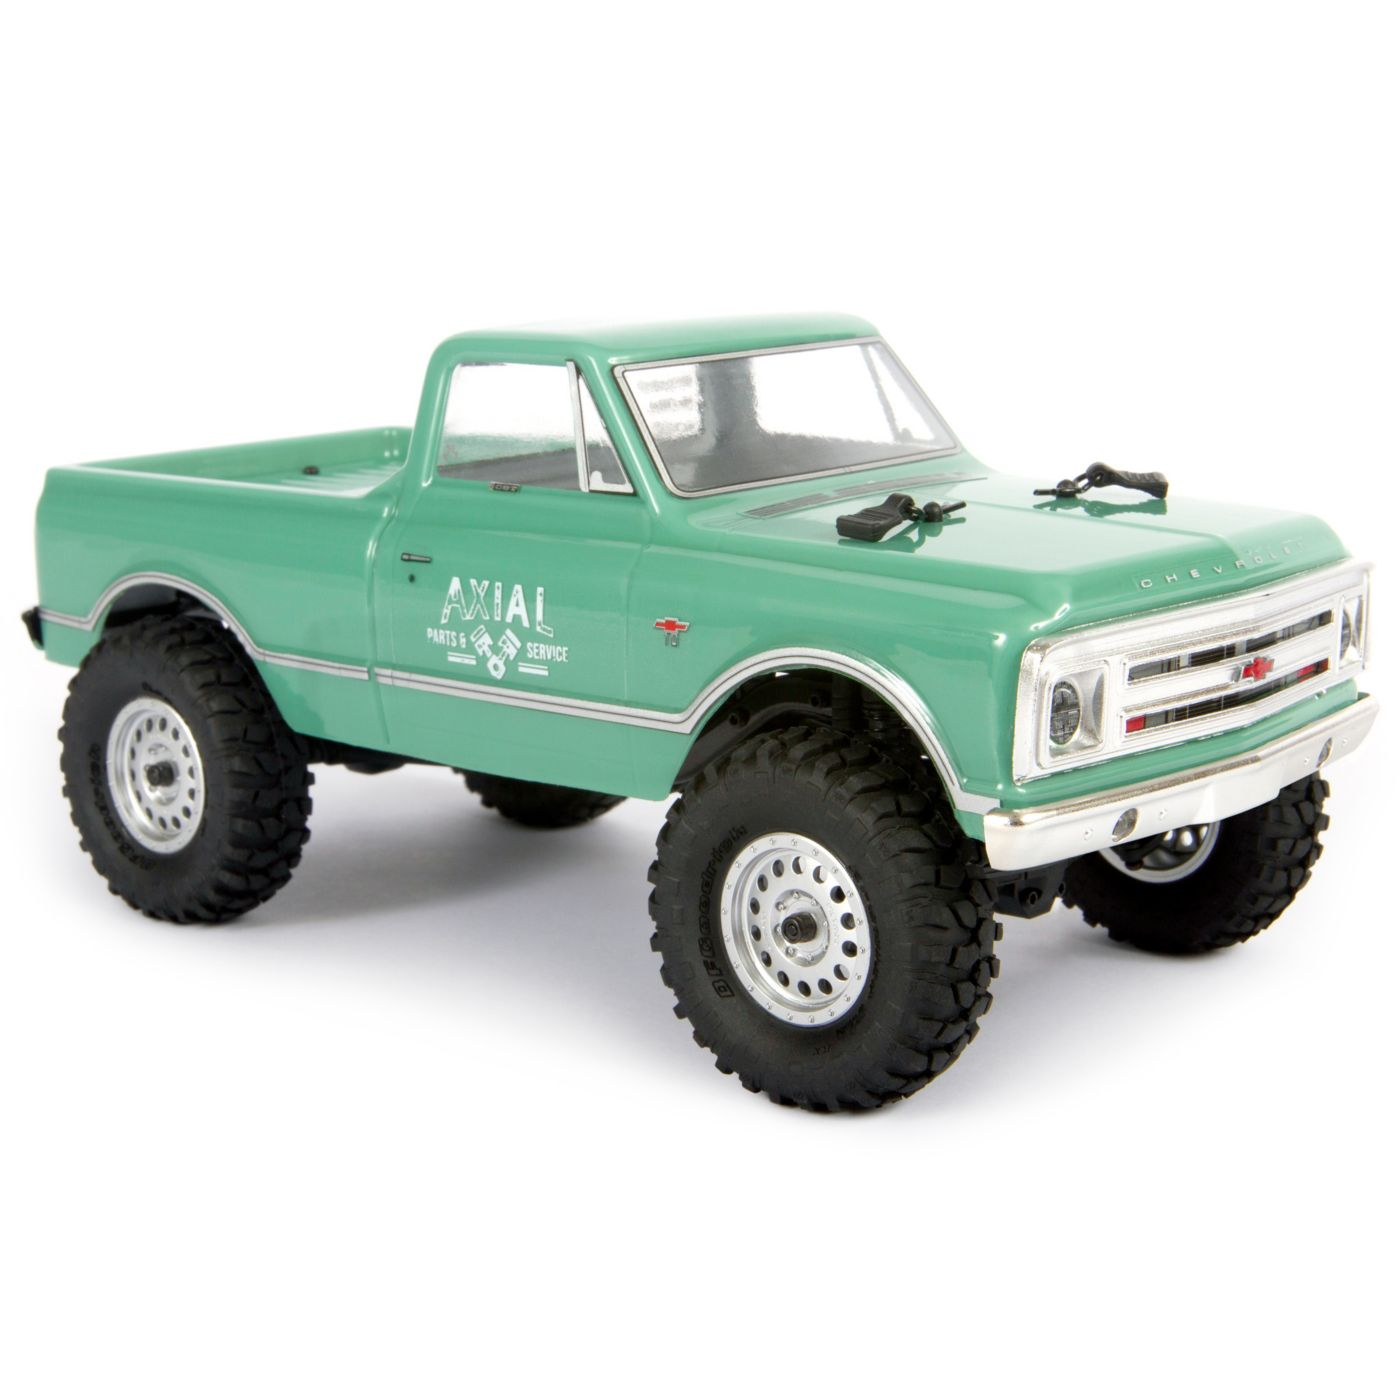 "Axial Racing 1/24 SCX24 1967 Chevrolet C10 4WD Truck Brushed RTR, Green <font color=""red""><b>(PREORDER)</b></font>  <font color=""red""><b>FREE BATTERY PROMO</b></font>"